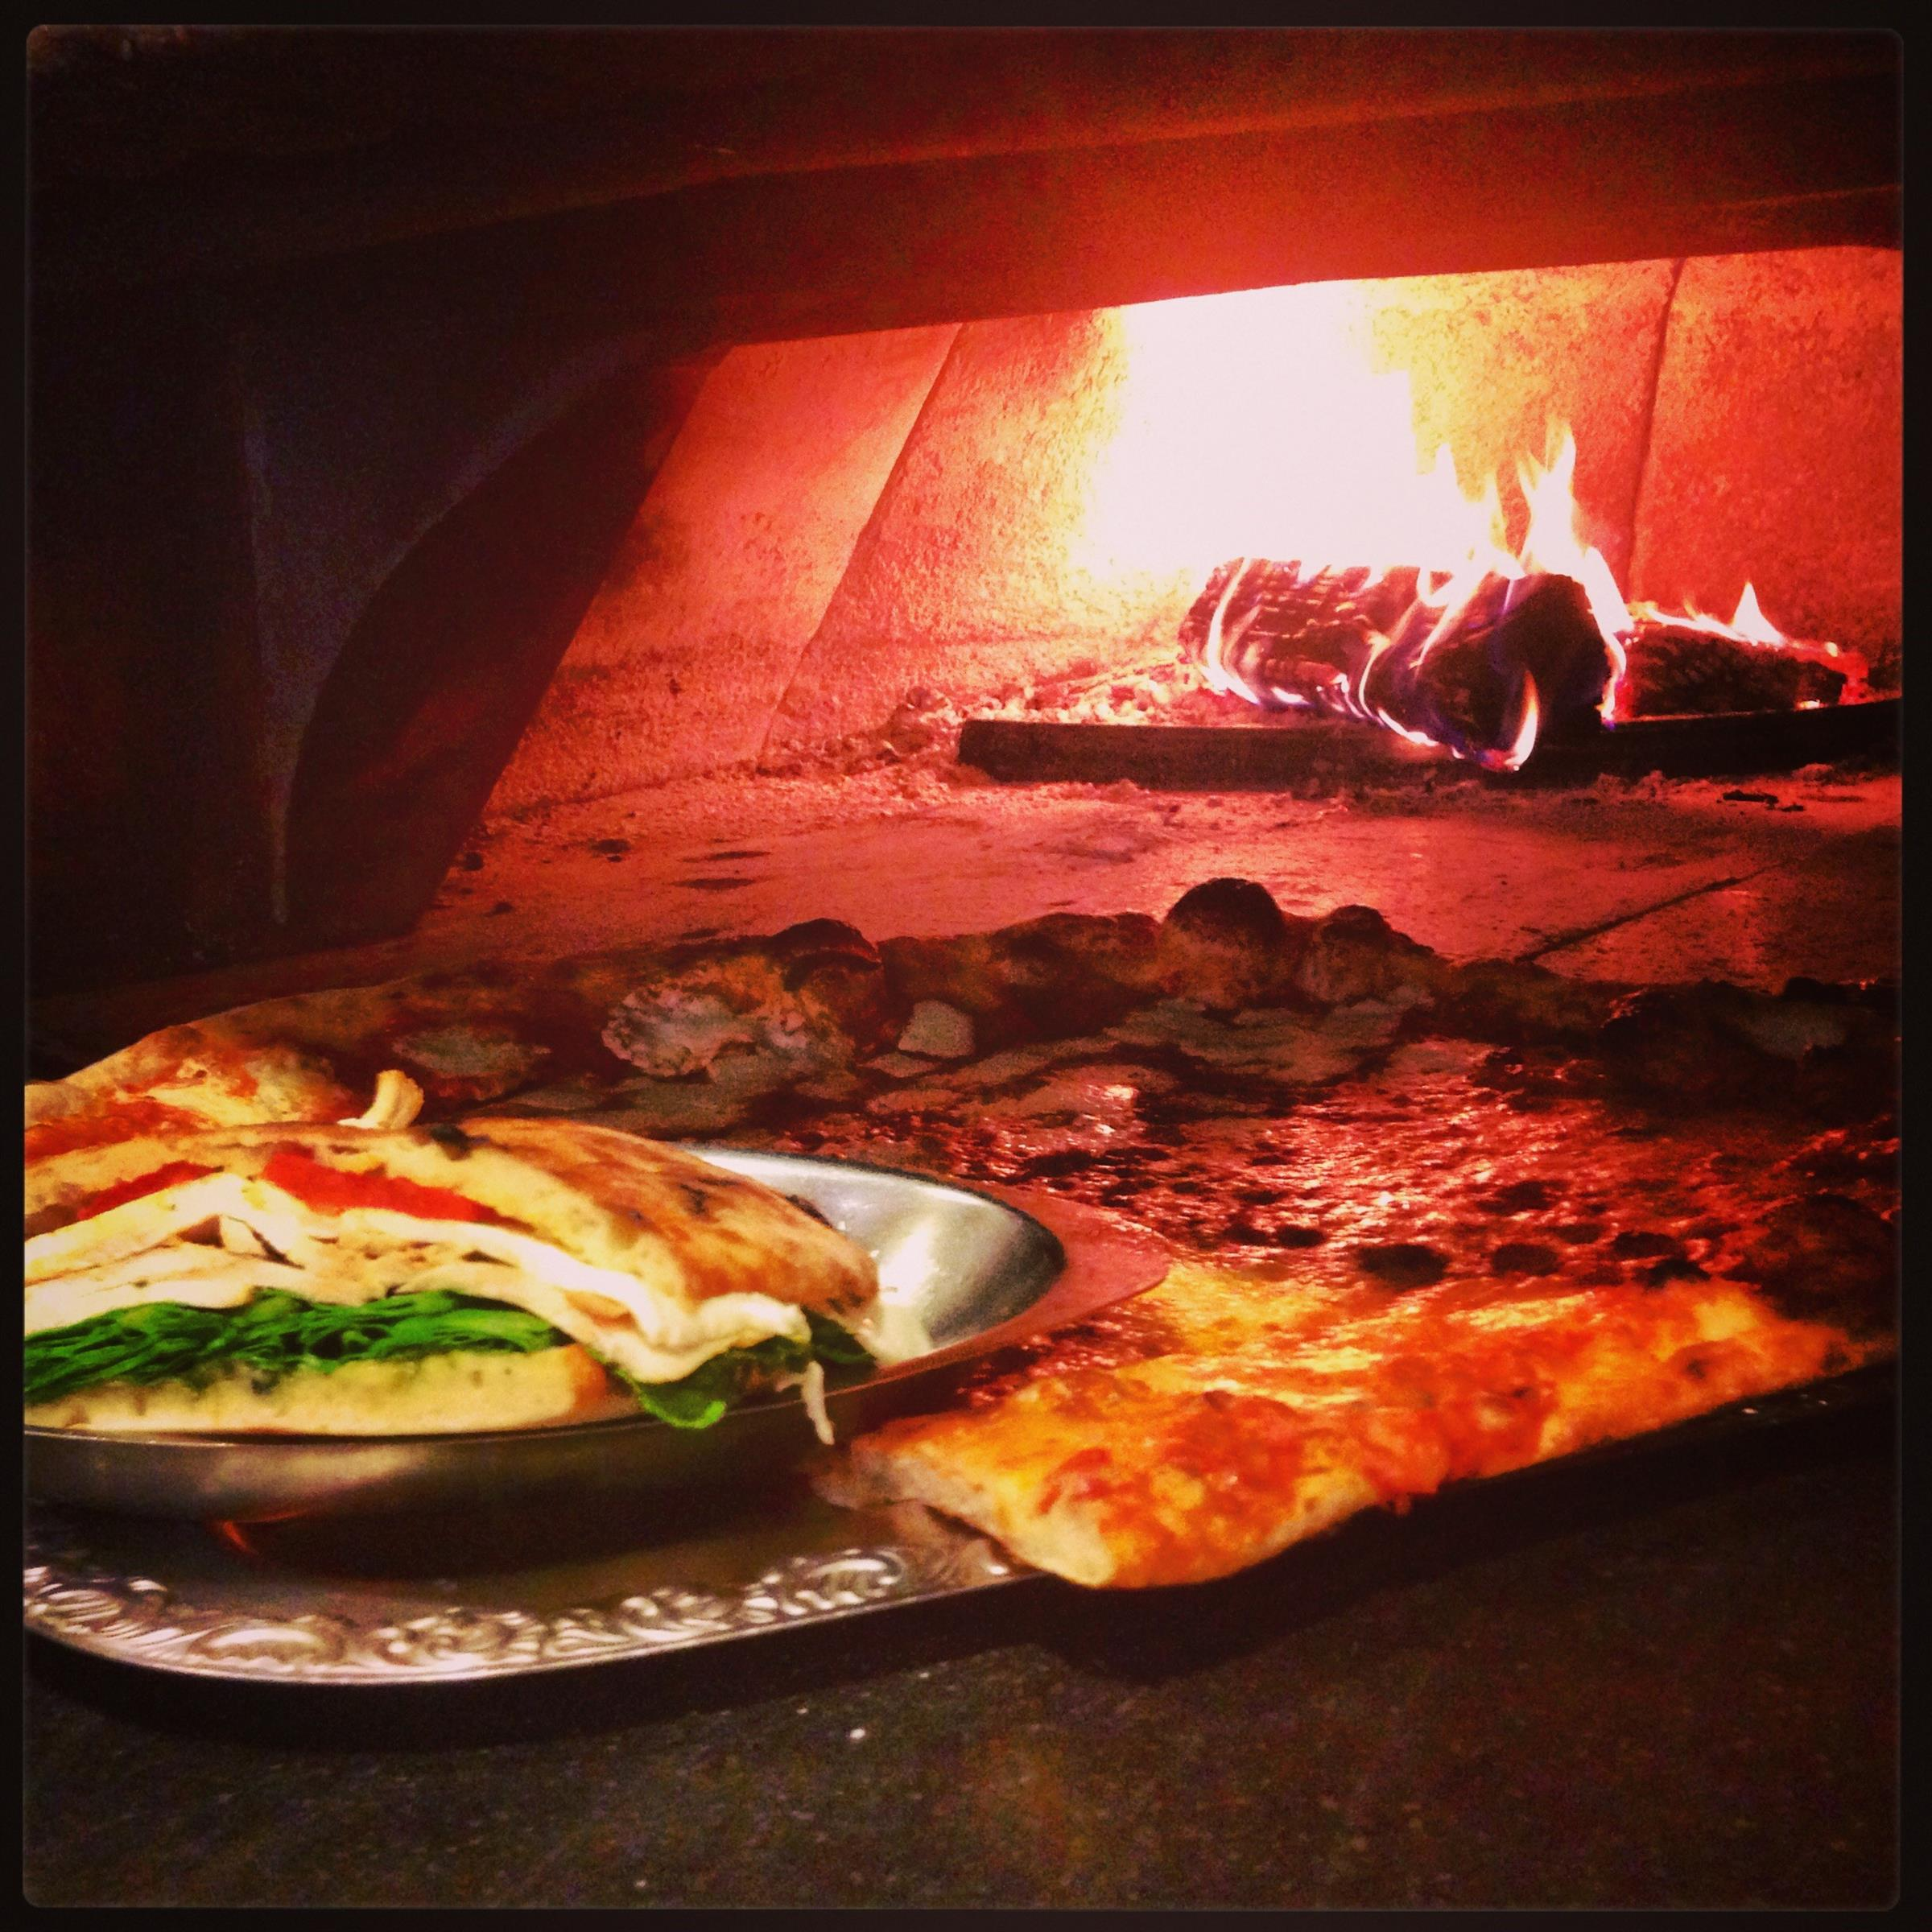 Food going into a wood fire oven